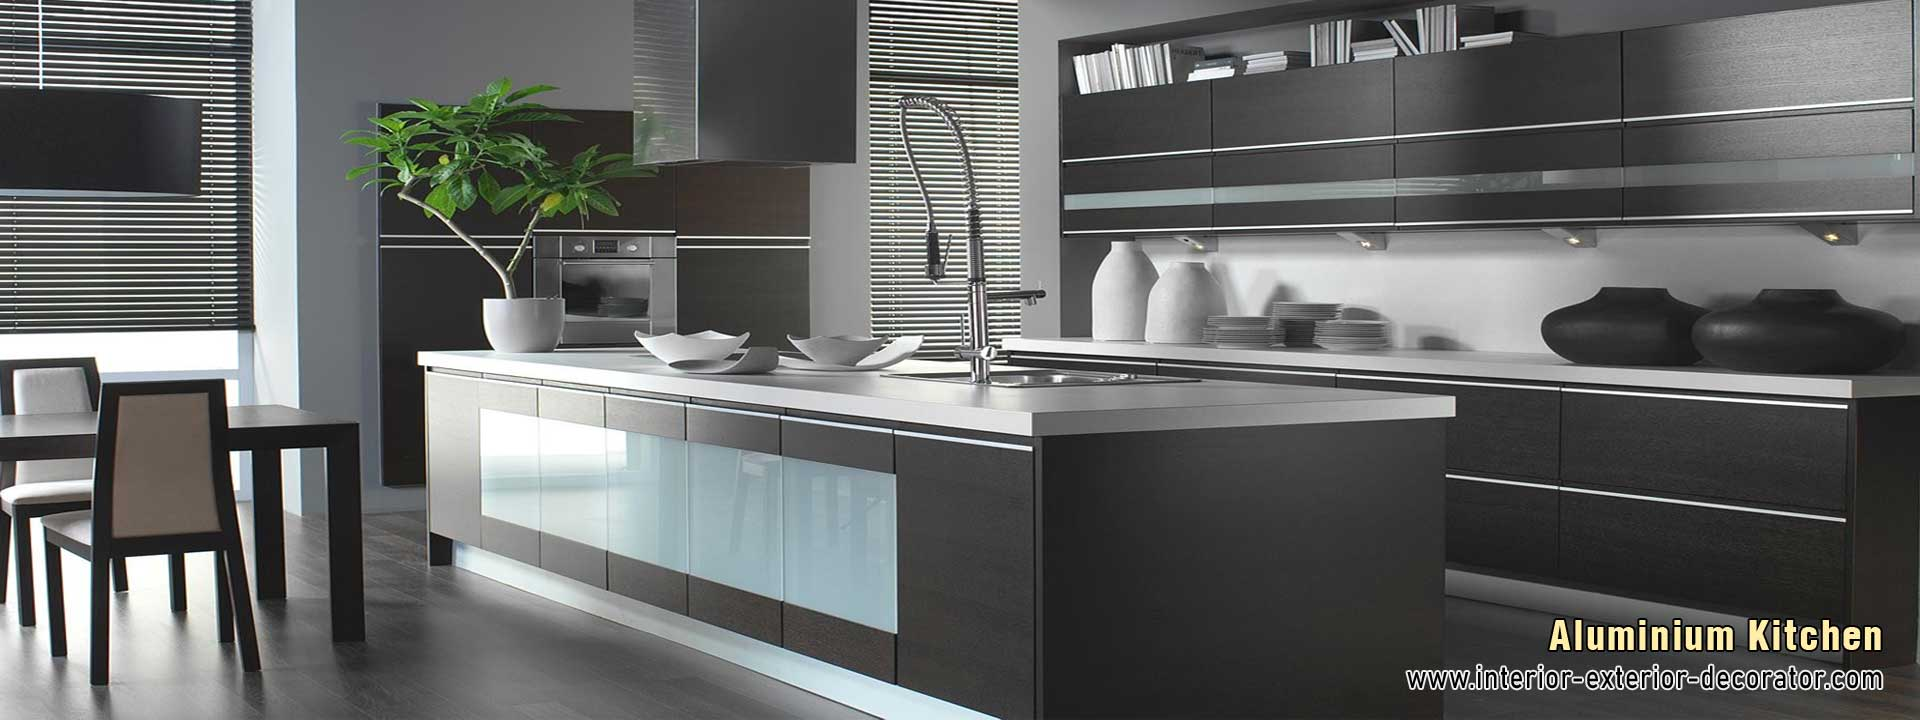 modular kitchen aluminium kitchen design manufacturers in ludhiana punjab india